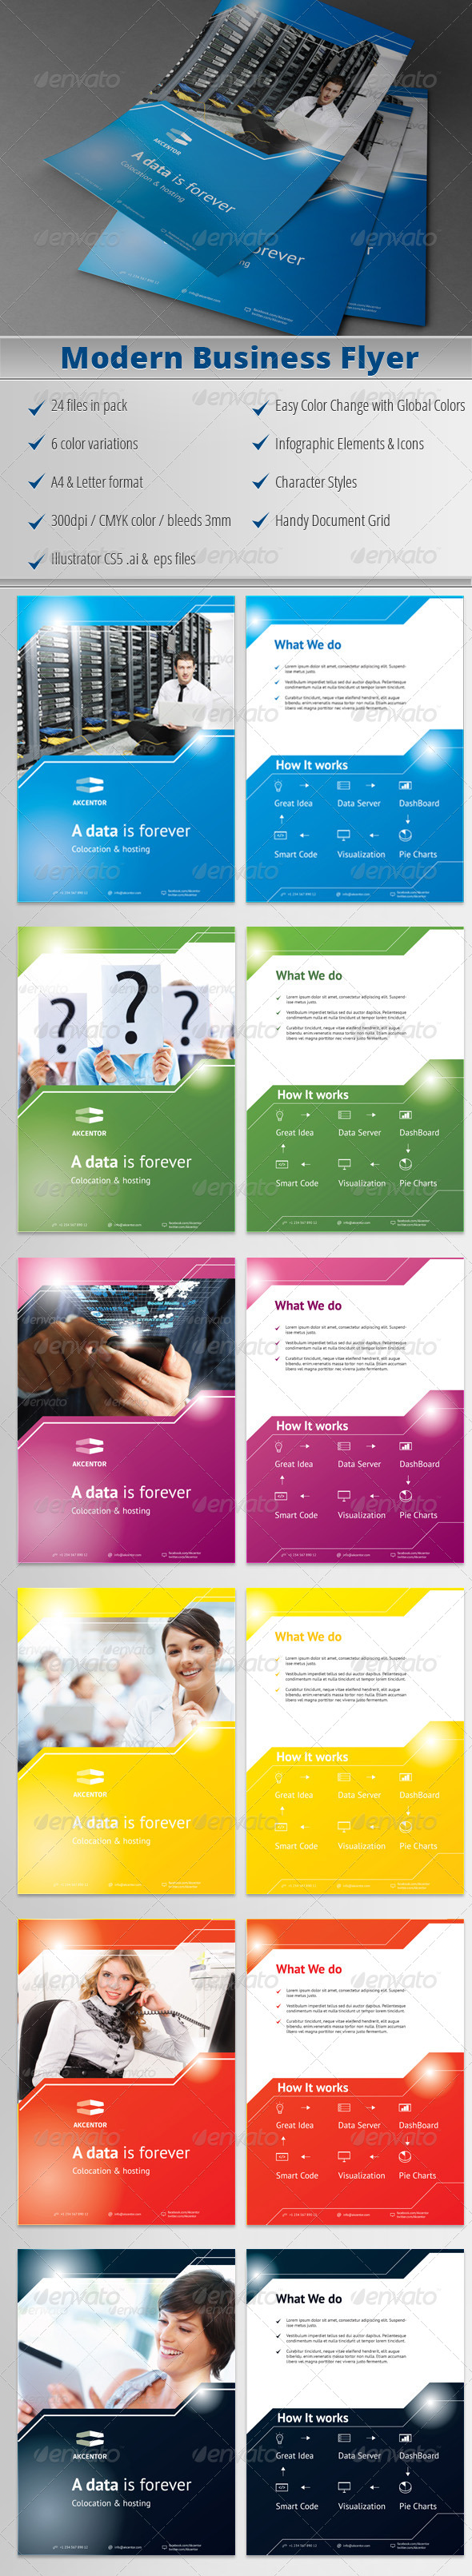 GraphicRiver Modern Business Flyer 01 4497212